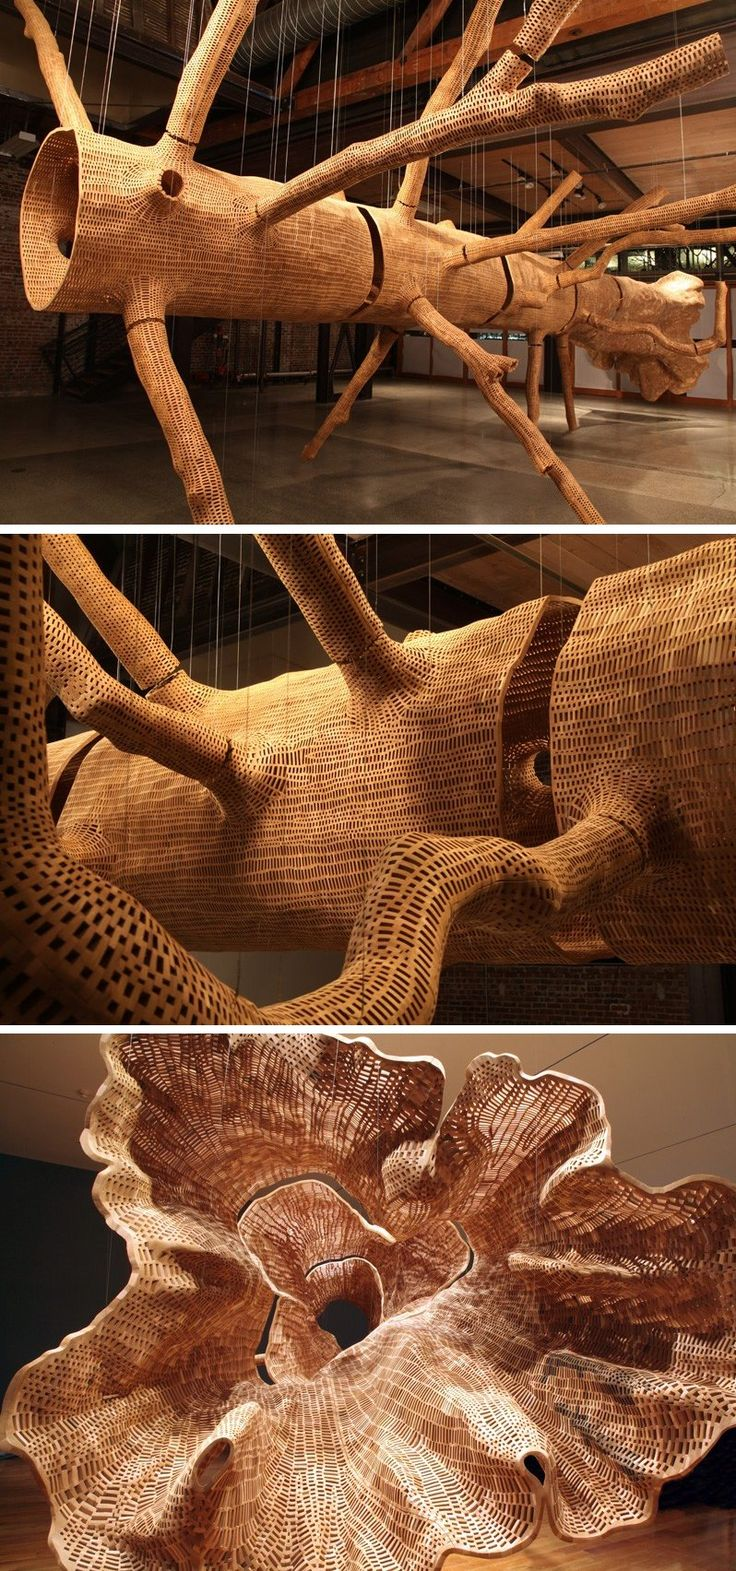 Seattle-based artist John Grade has created Middle Fork, a tree sculpture that has been made up of hundreds of thousands of individual wood pieces. To get the shape of the sculpture, John and his assistants scaled a 140-year old old-growth Western Hemlock tree, where they took plaster casts of its trunk and limbs.